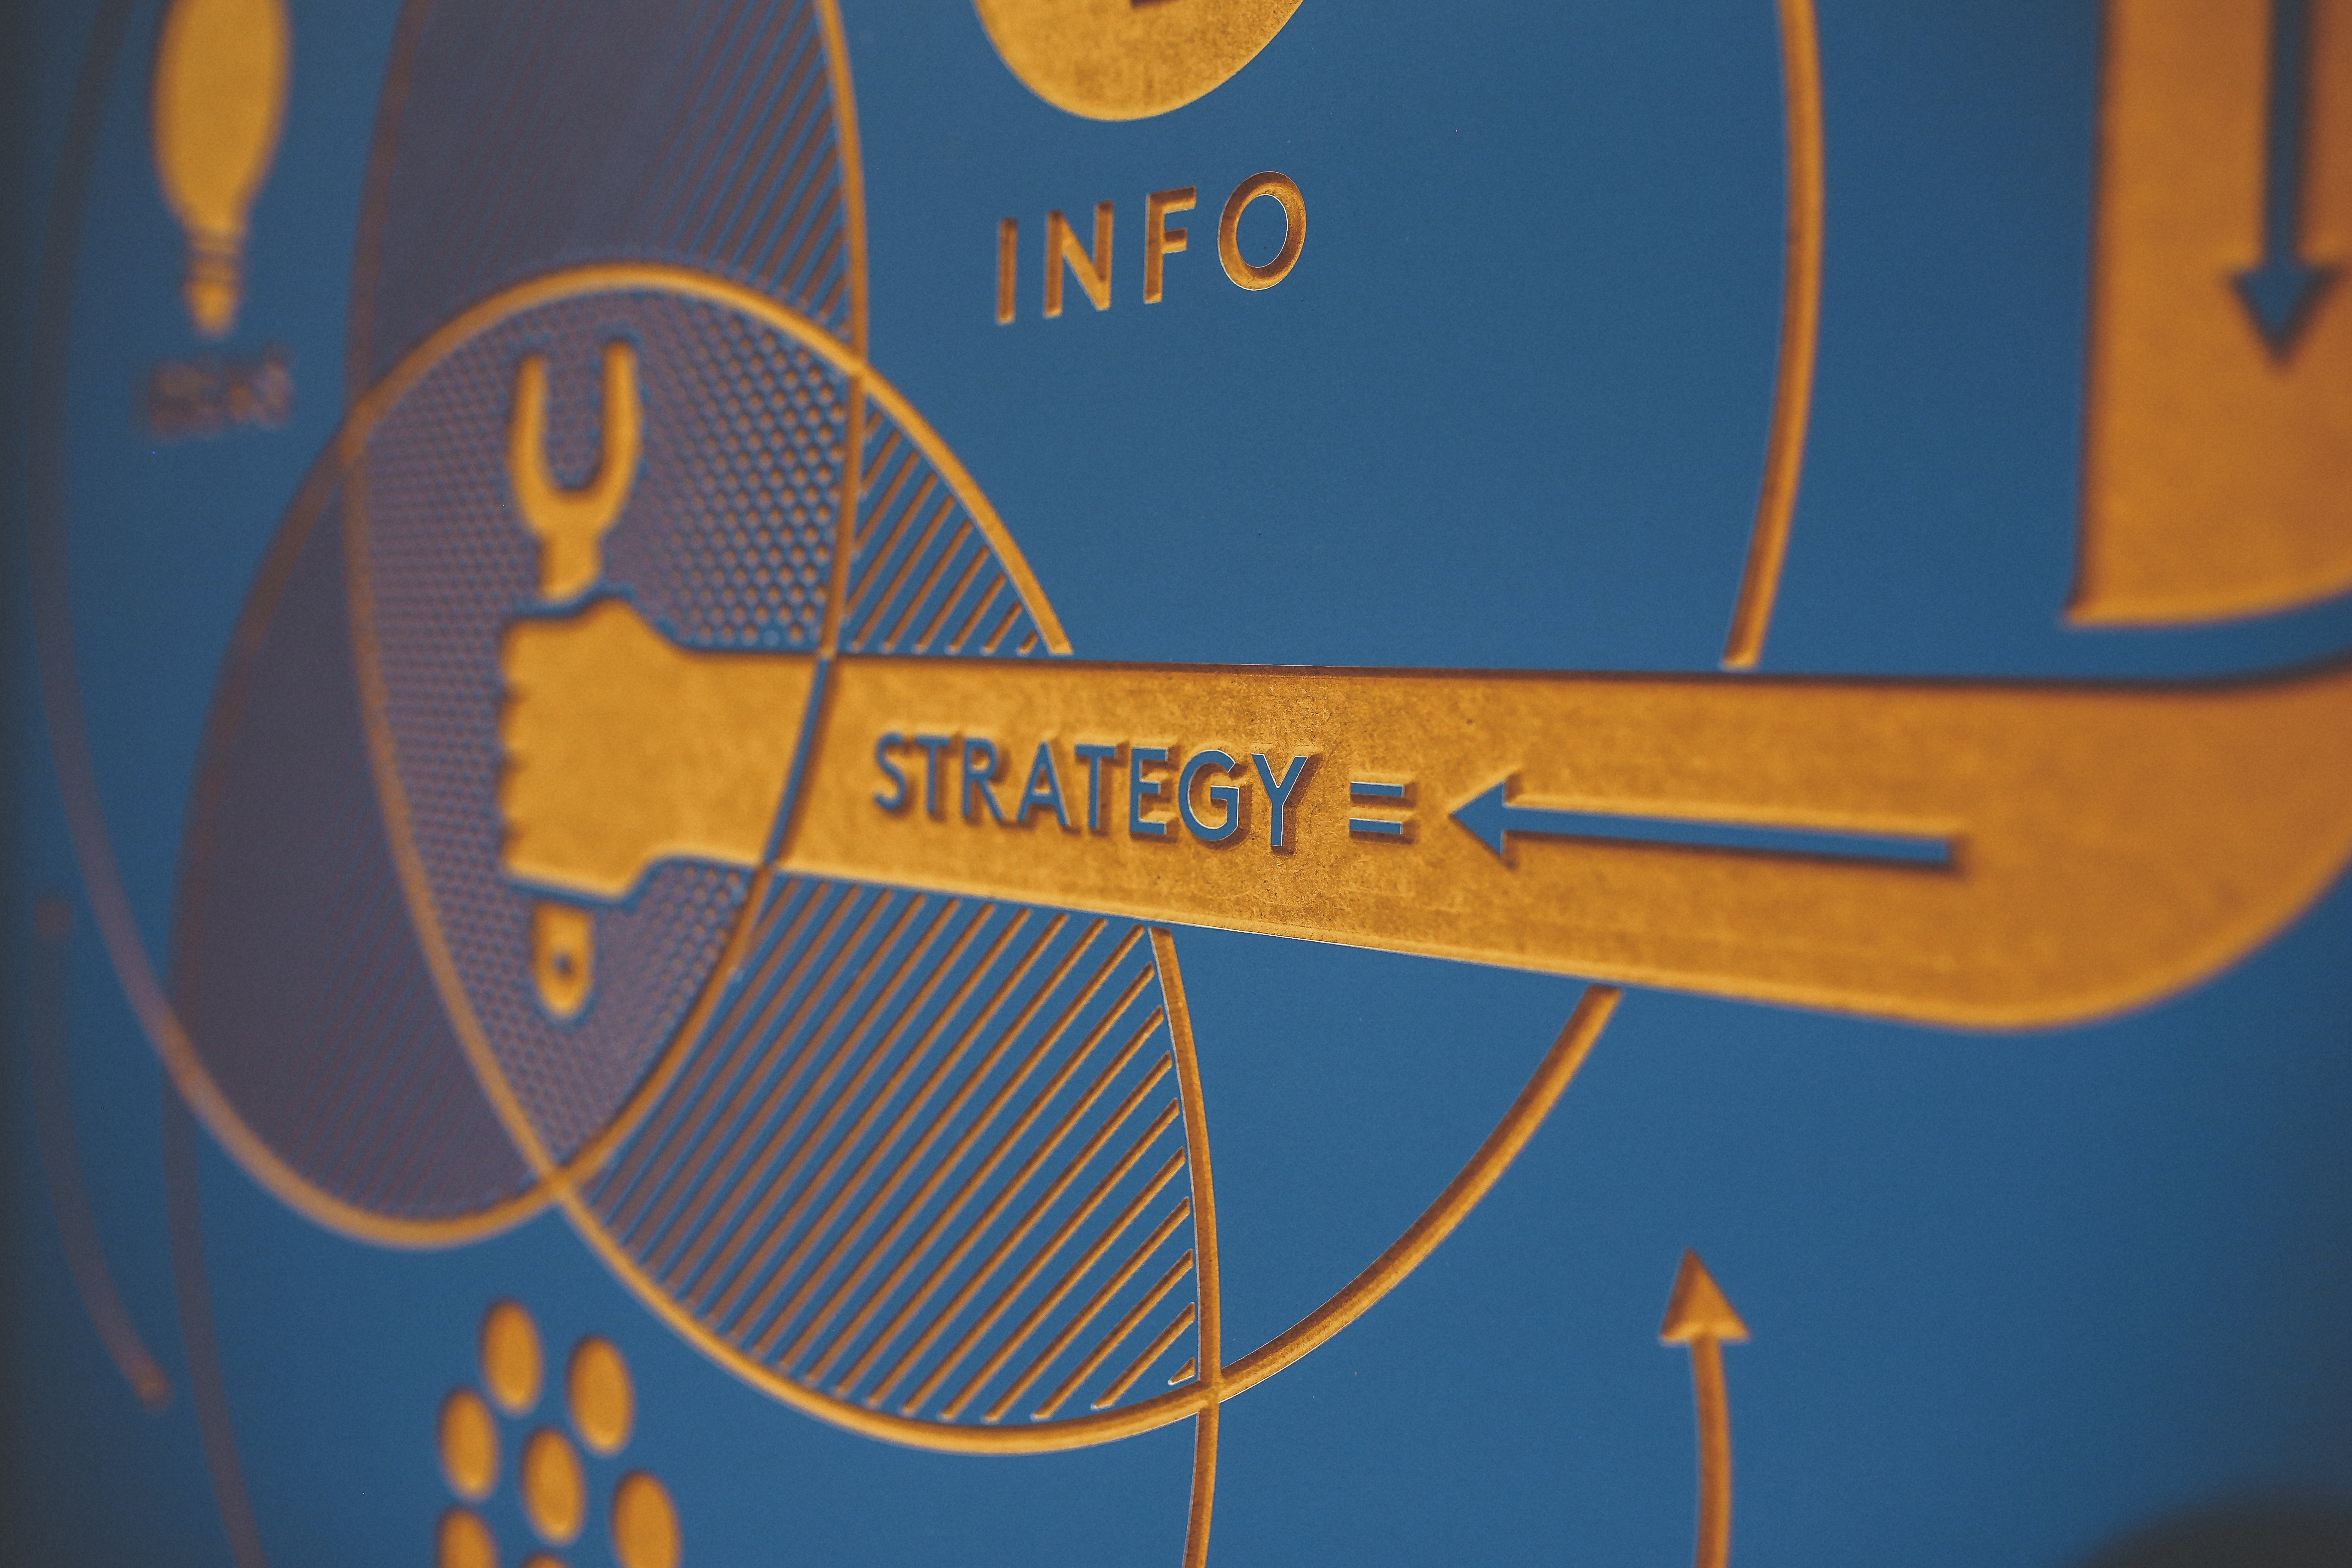 Ethos in restoration marketing is part of a potent strategy